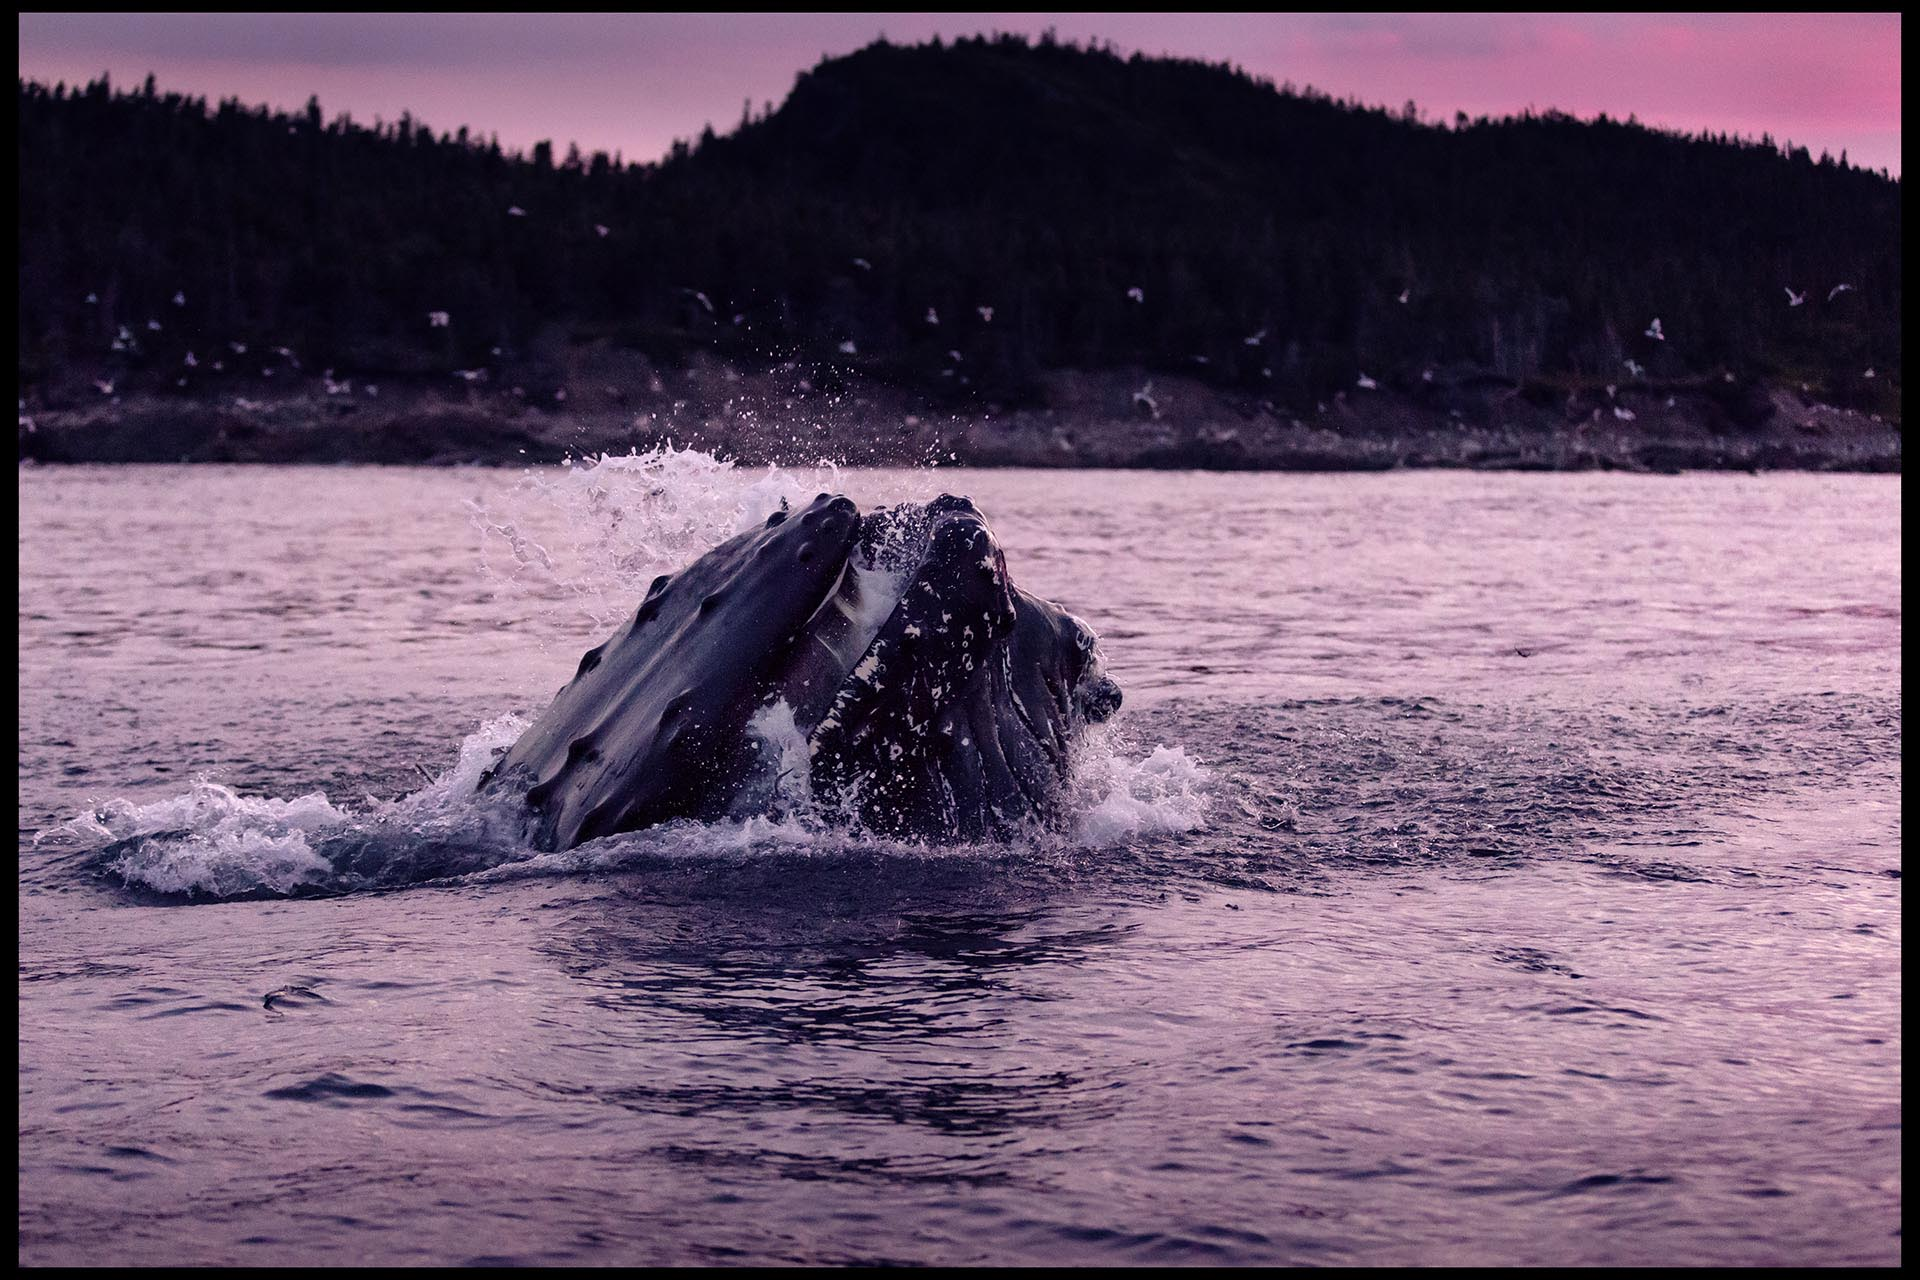 whales_july2017_part4-02clrlr